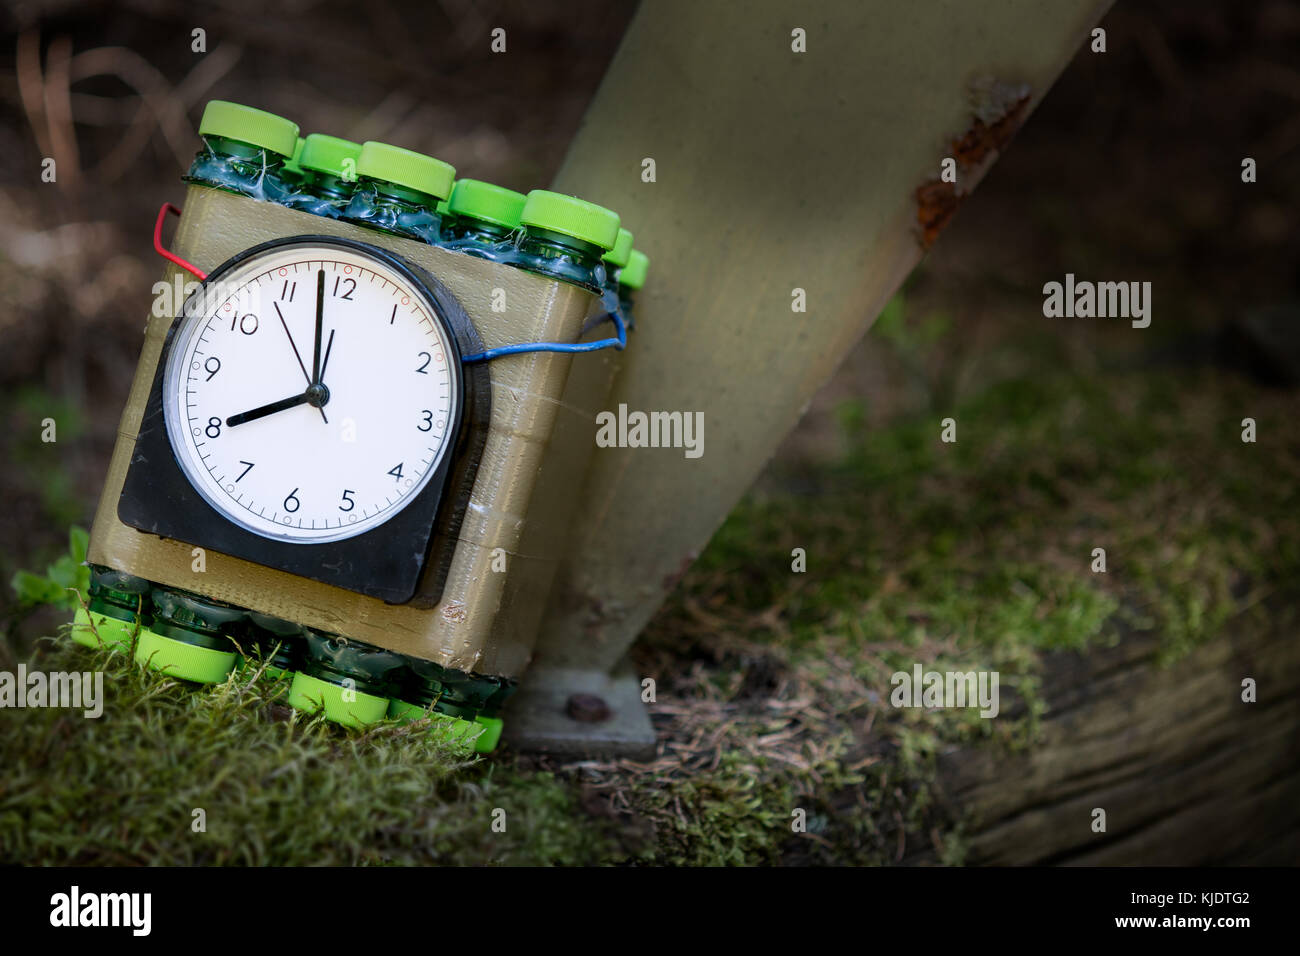 Imitation of timed bomb. Terrorist attack concept. Dangerous explosive placed at metal construction. Small depth - Stock Image